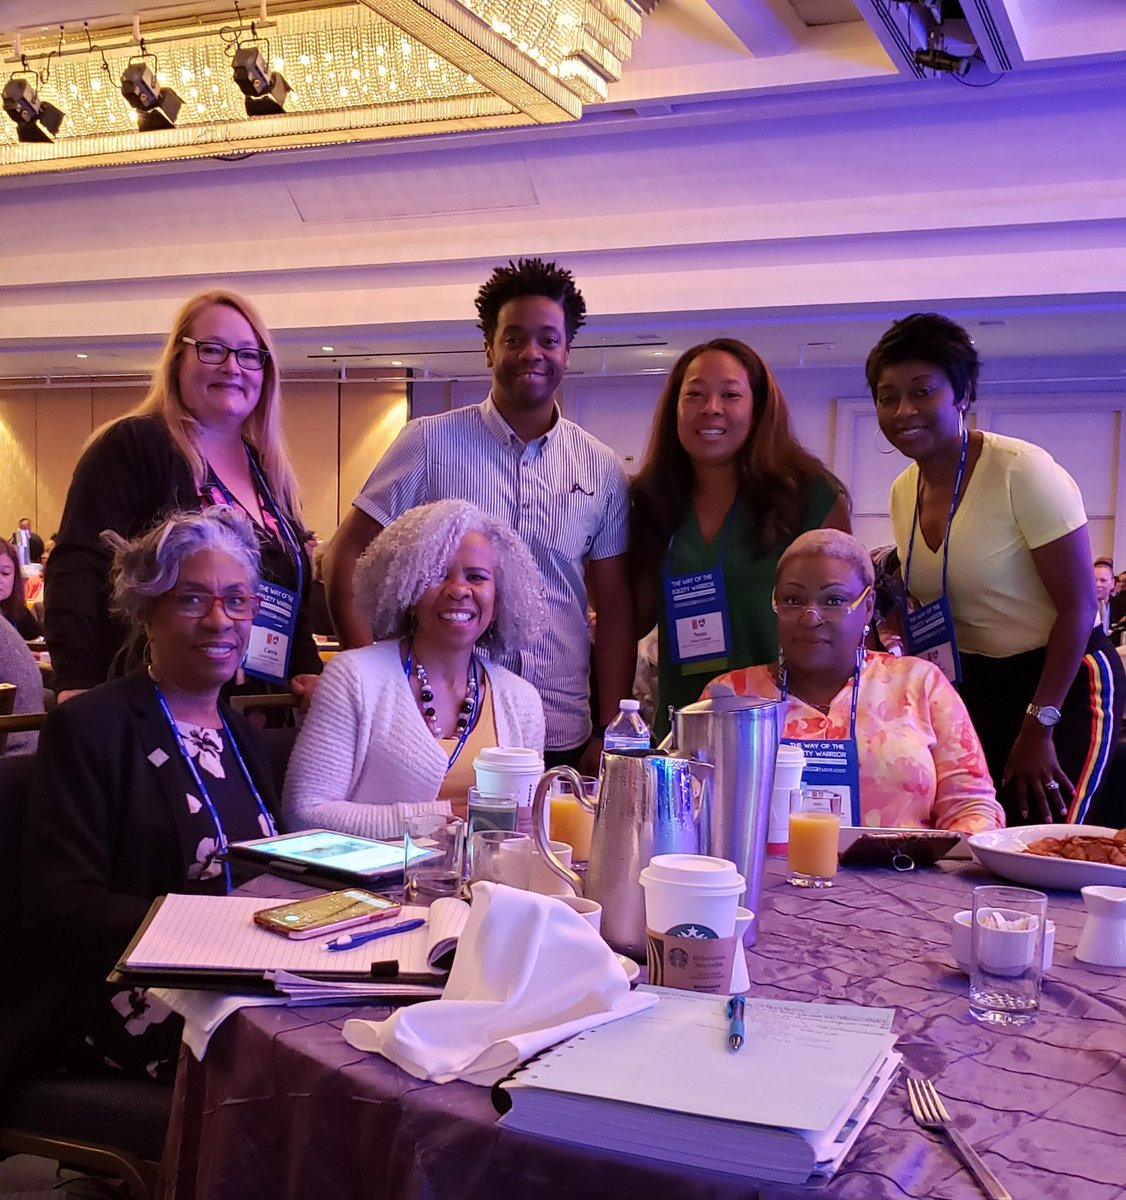 The way of the Equity Warrior - what's your GEAR UP Code? #Connection #Hope #Resliency #GEARUPworks @mbrt @MdPublicSchools @MDMHEC<br>http://pic.twitter.com/dT4h0tD8K7 – à Hilton San Francisco Union Square